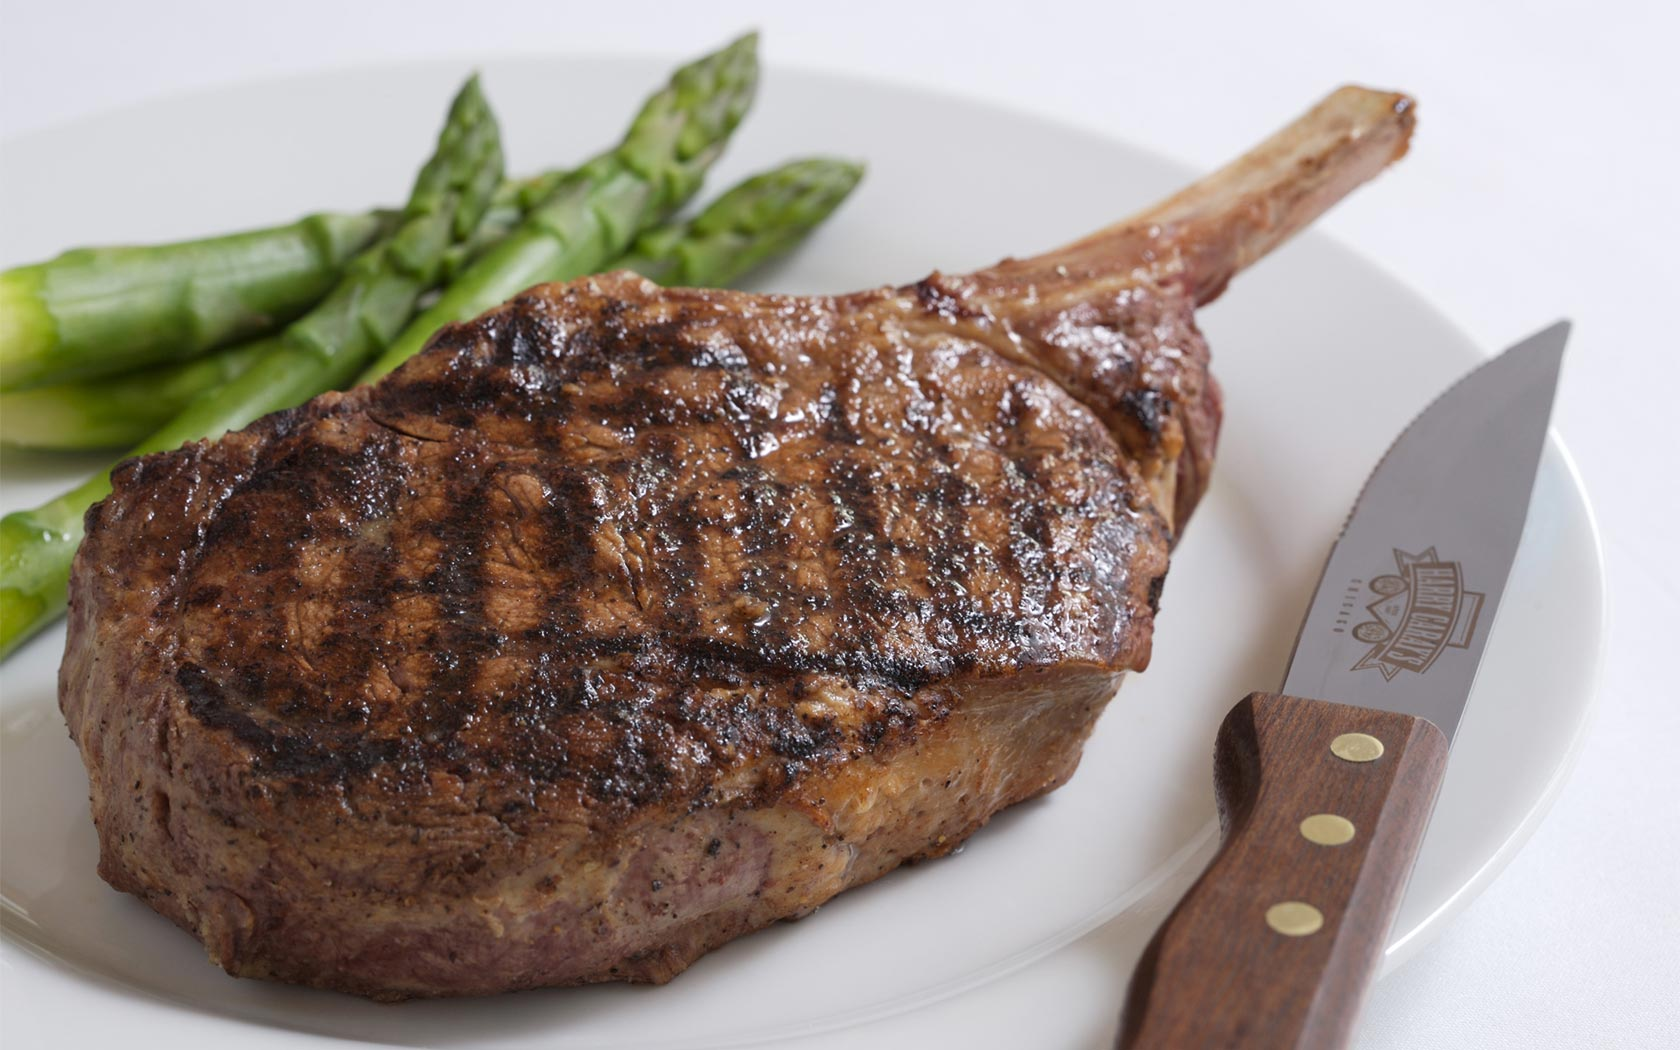 Mobile Steak Pictures- Full HD BsnSCB Graphics